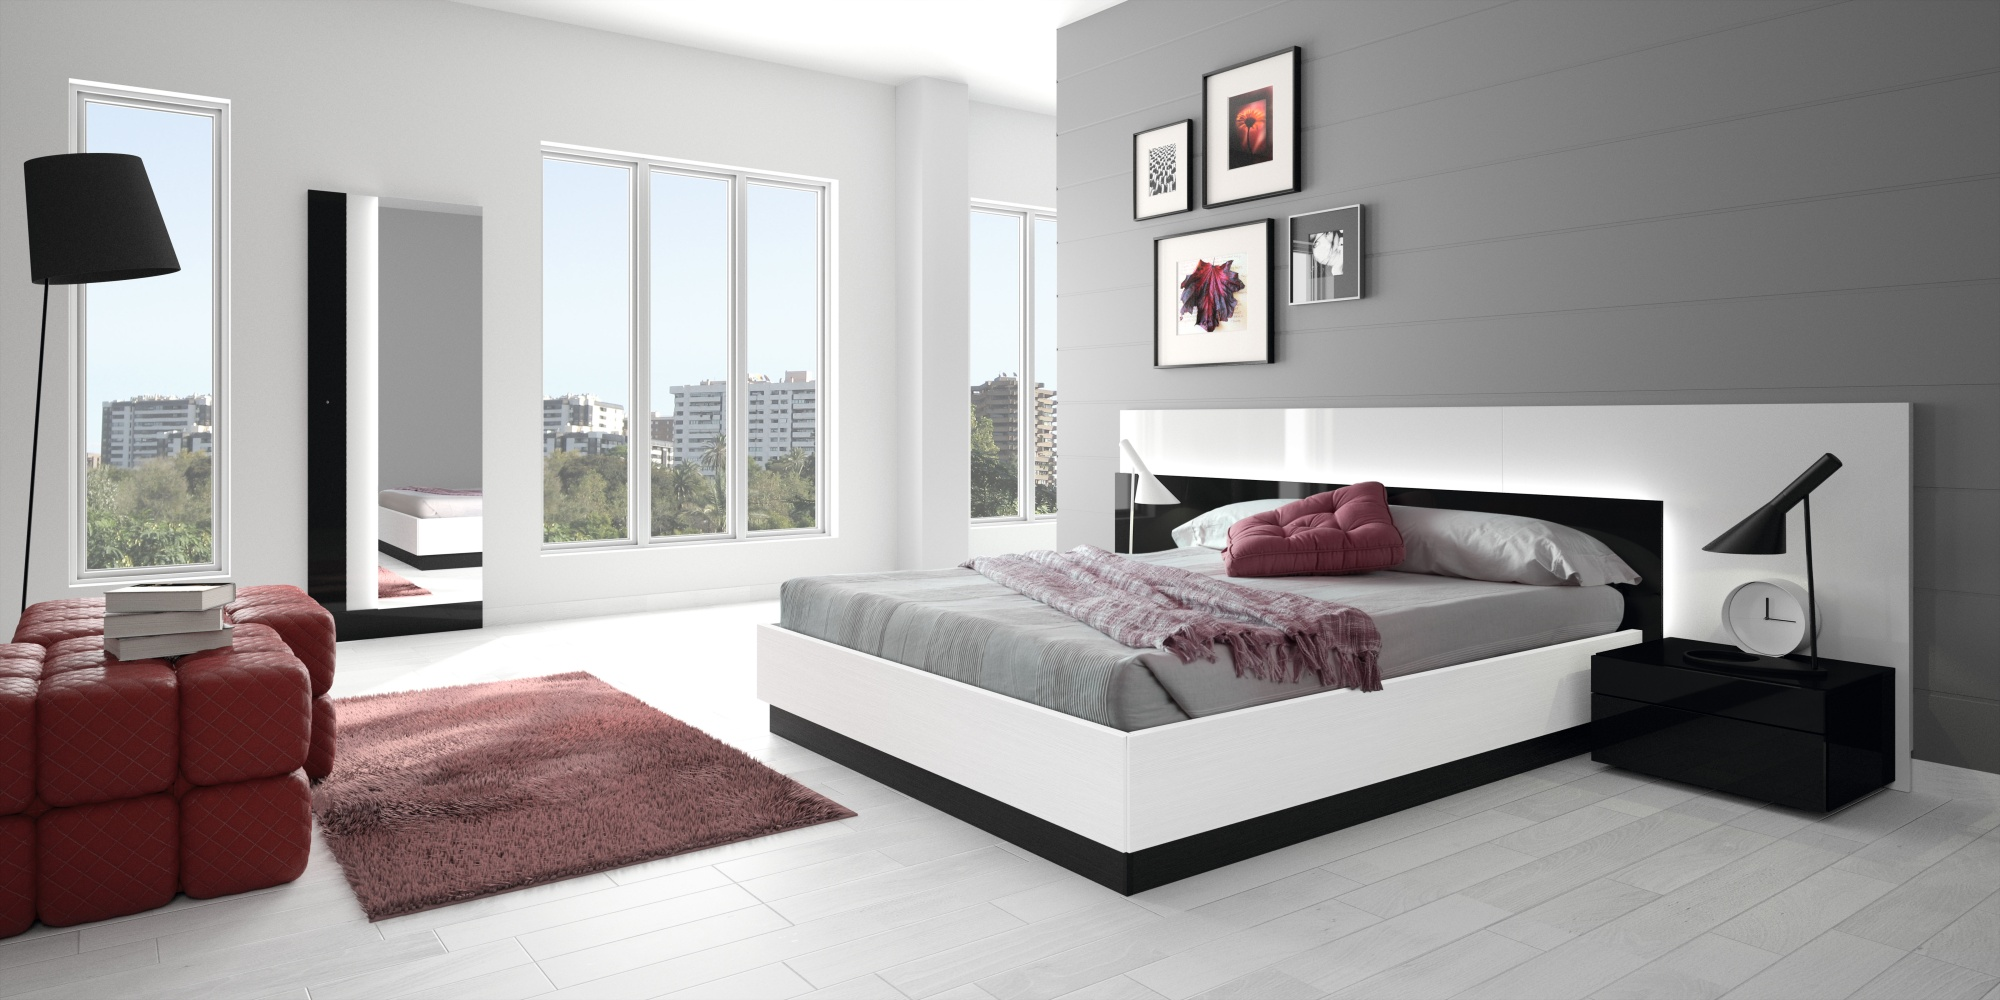 choosing bedroom furniture tips 13